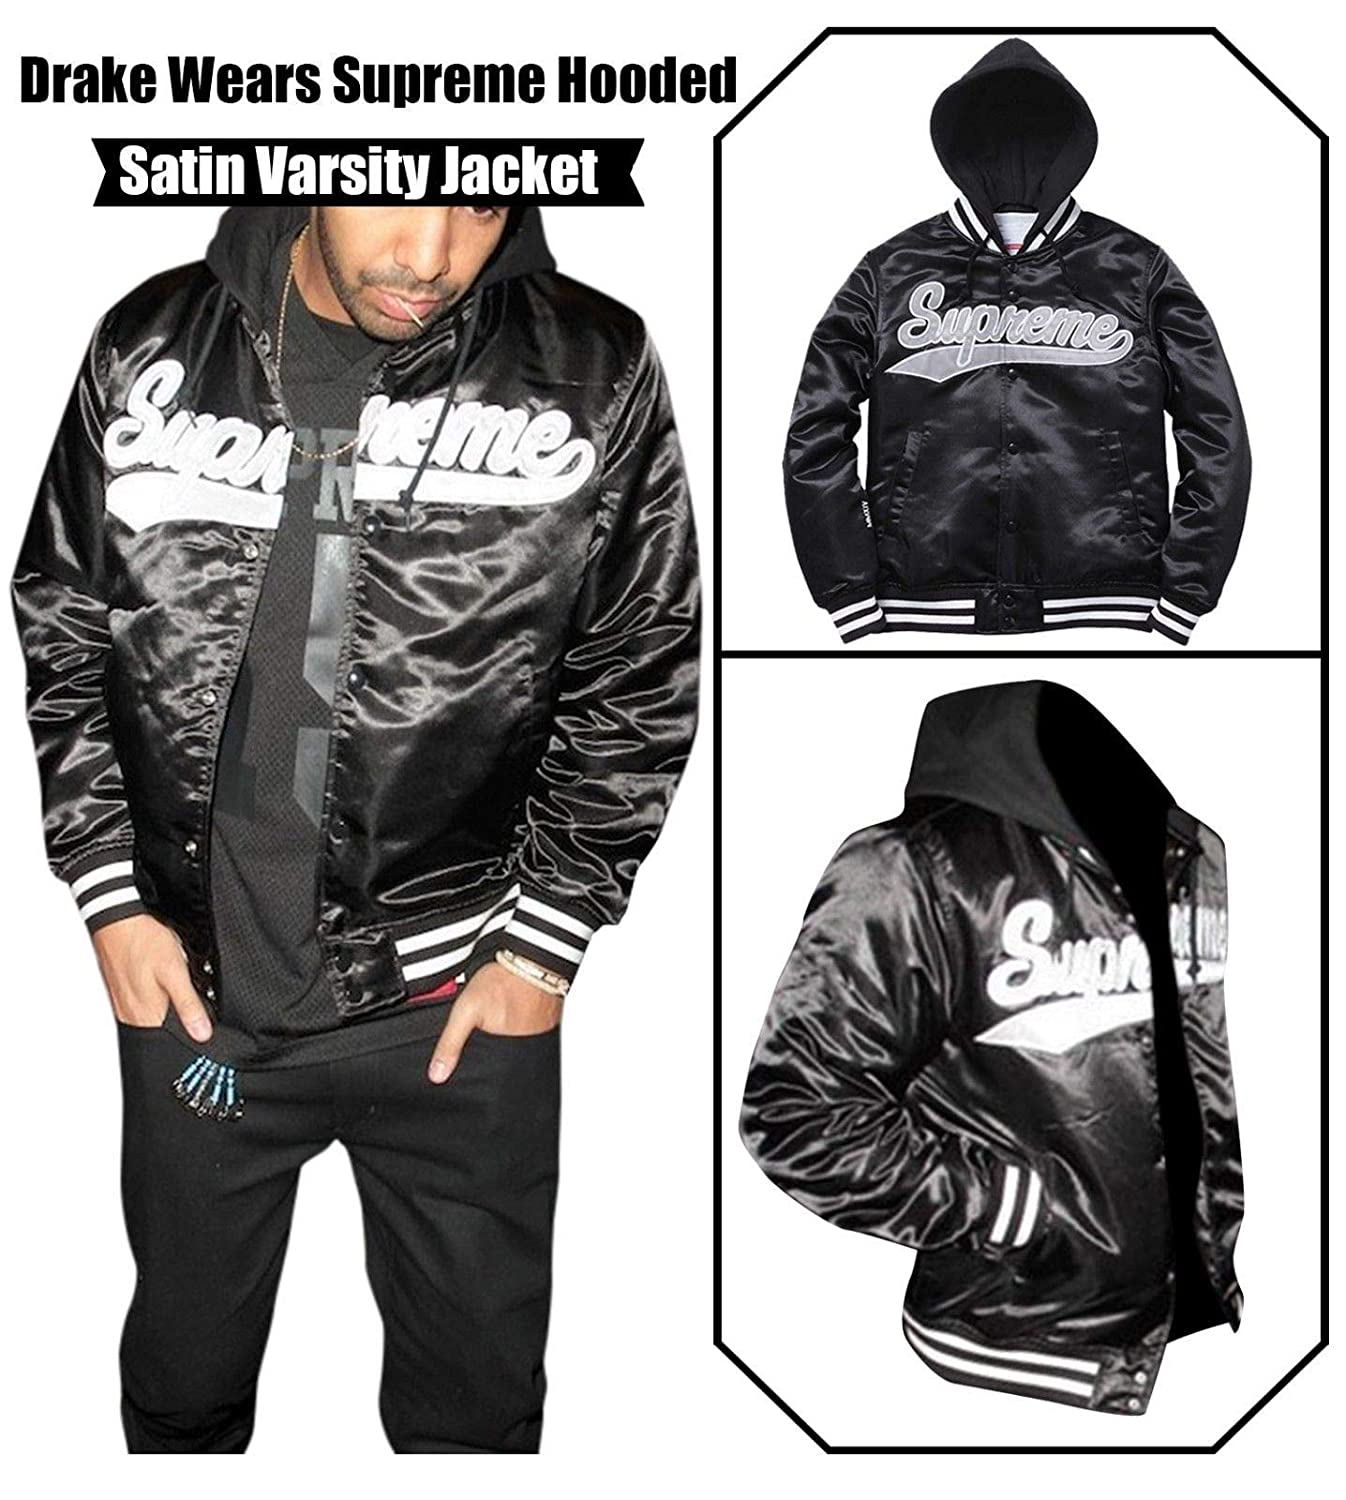 NM Fashions Men's Black Drake Bomber Wears Hooded Supreme Versity Satin Jacket NMFashions Down